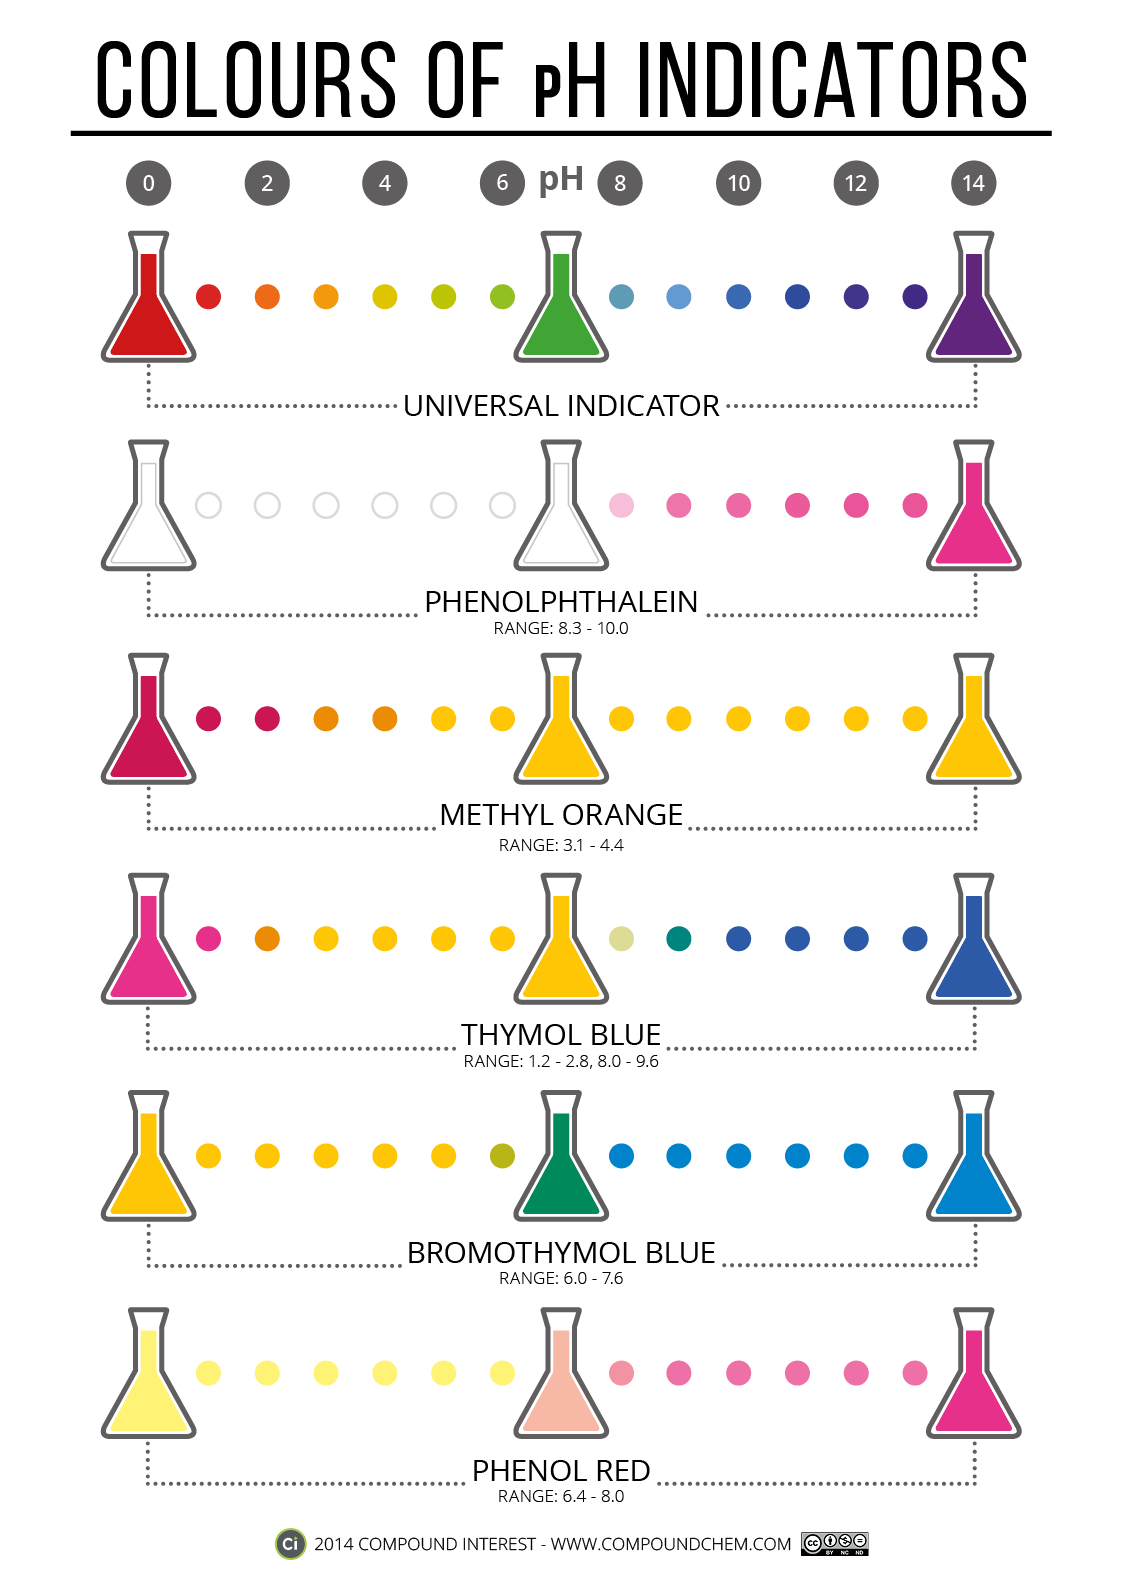 Colours of ph indicators and other cool chemistry visuals c h e colours of ph indicators and other cool chemistry visuals nvjuhfo Choice Image